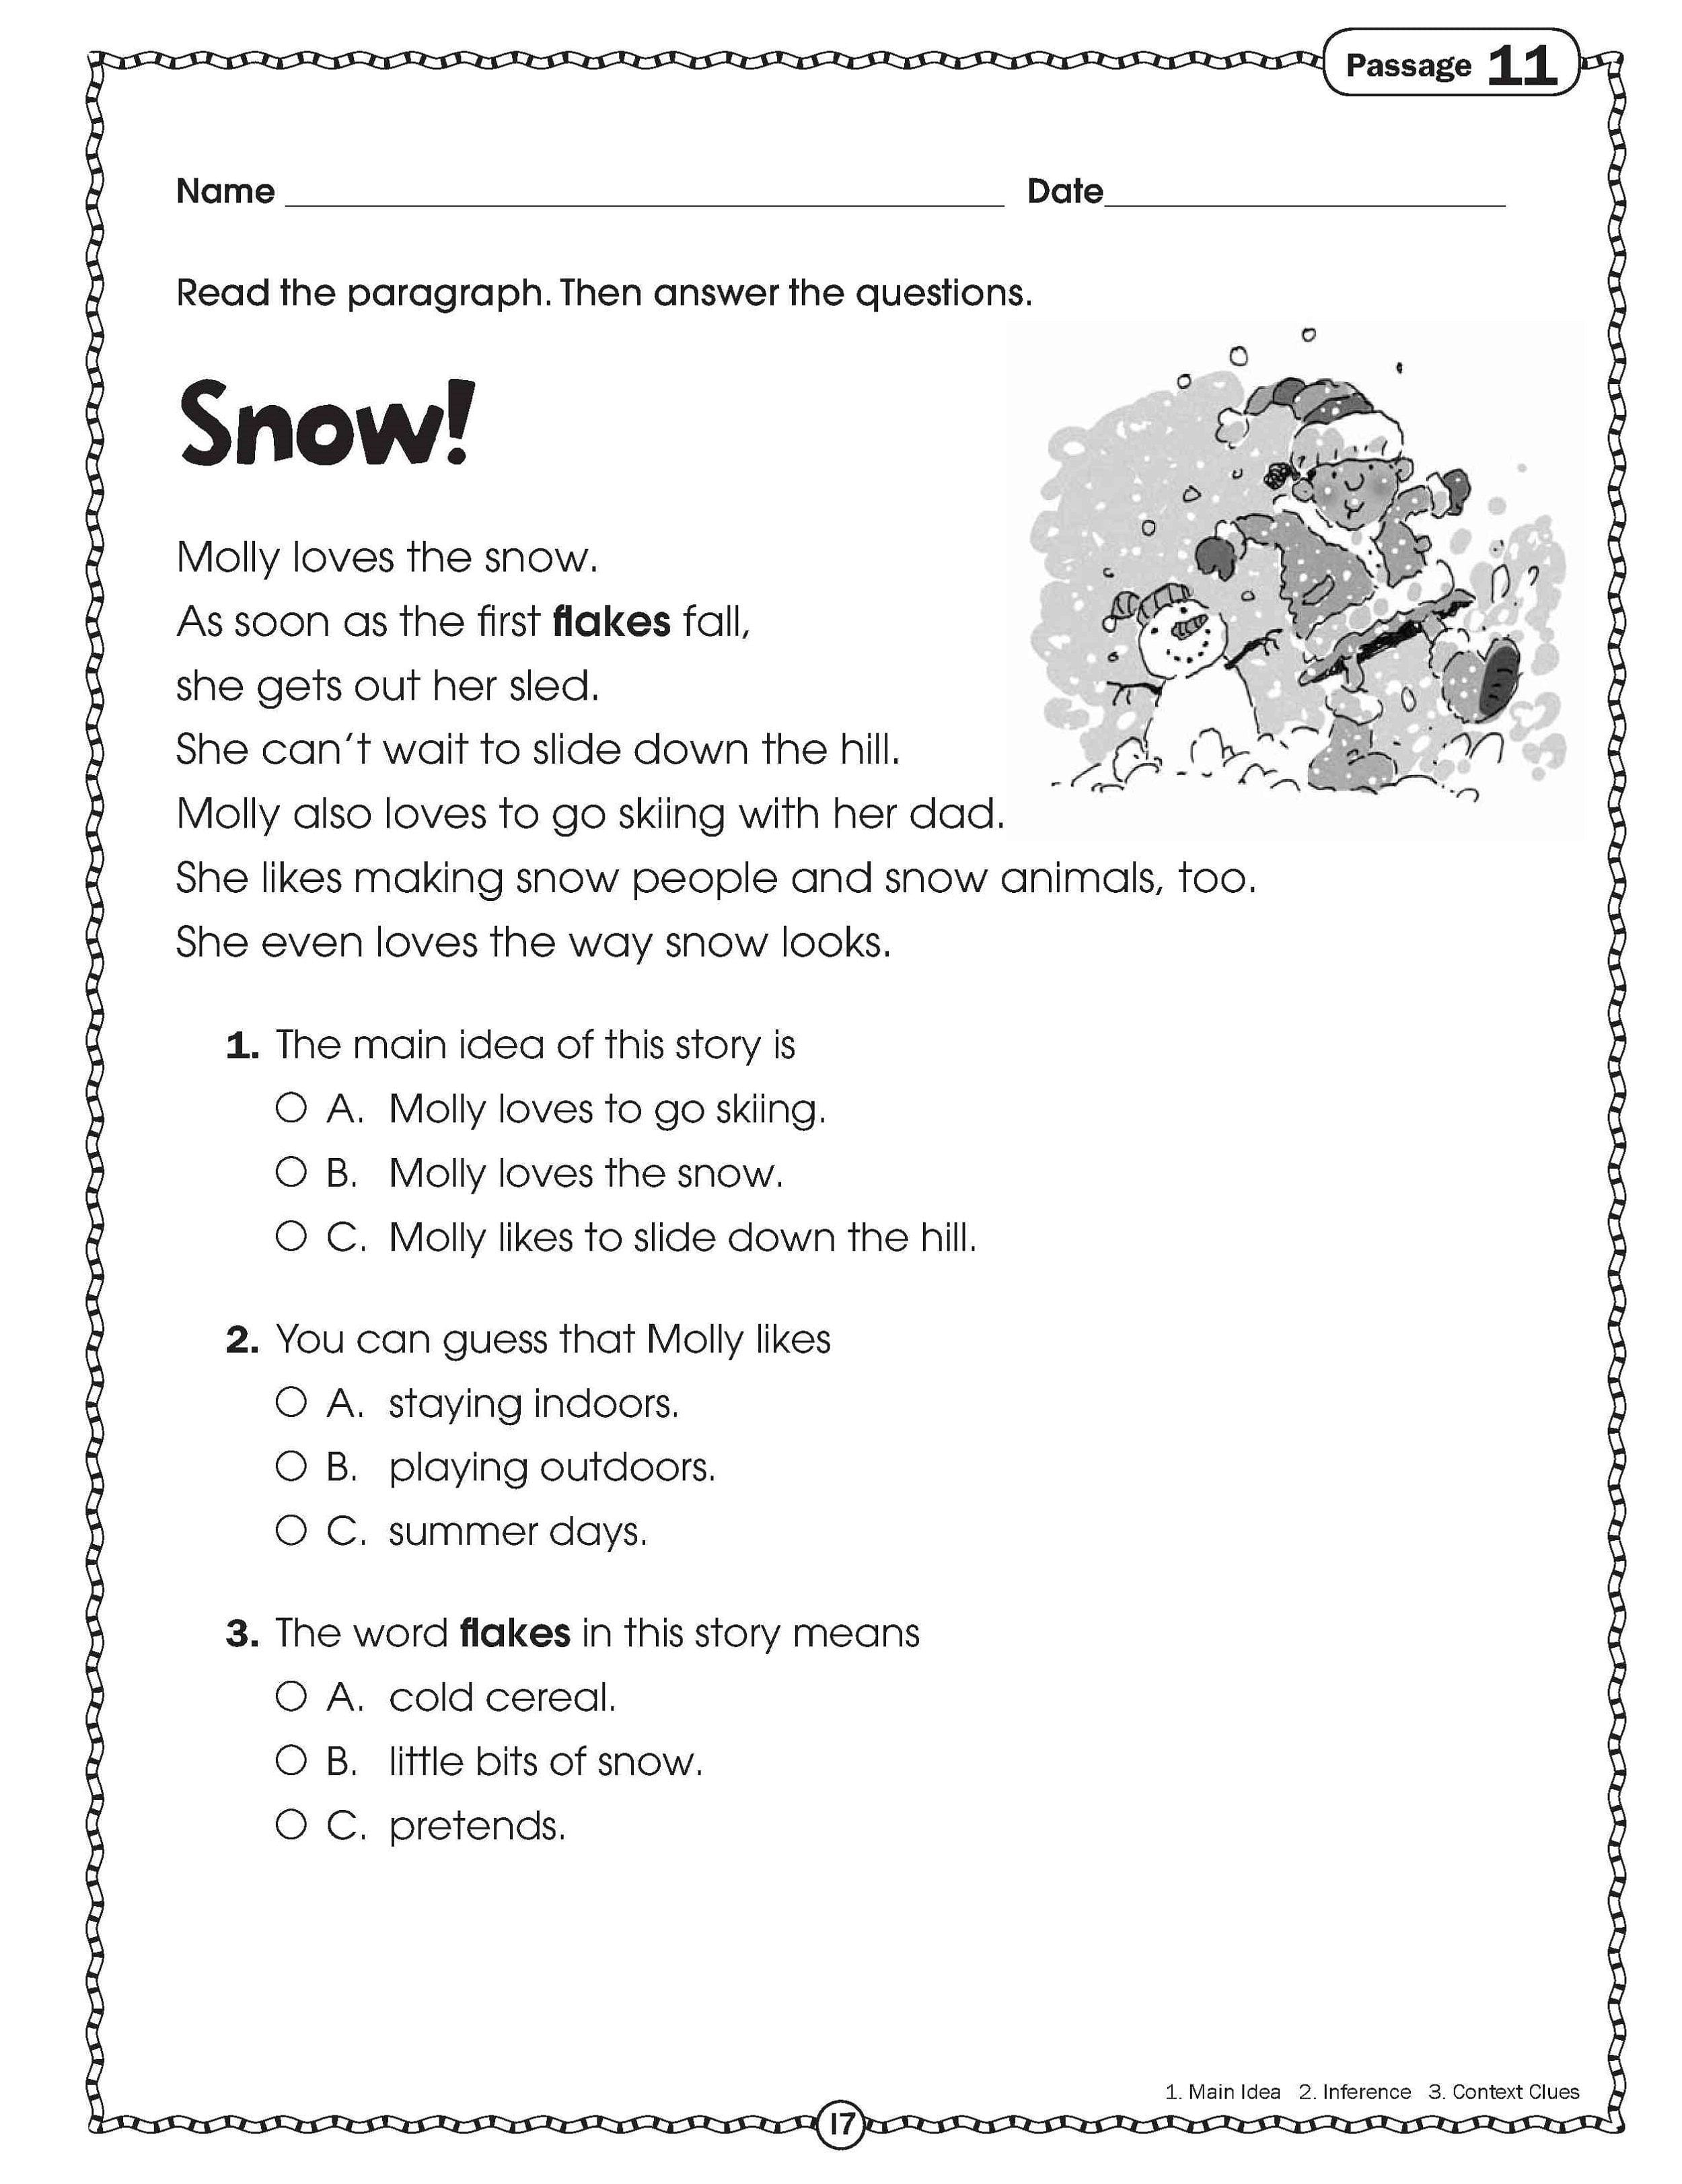 Free Handouts Reading Learning Printable Kids Worksheets